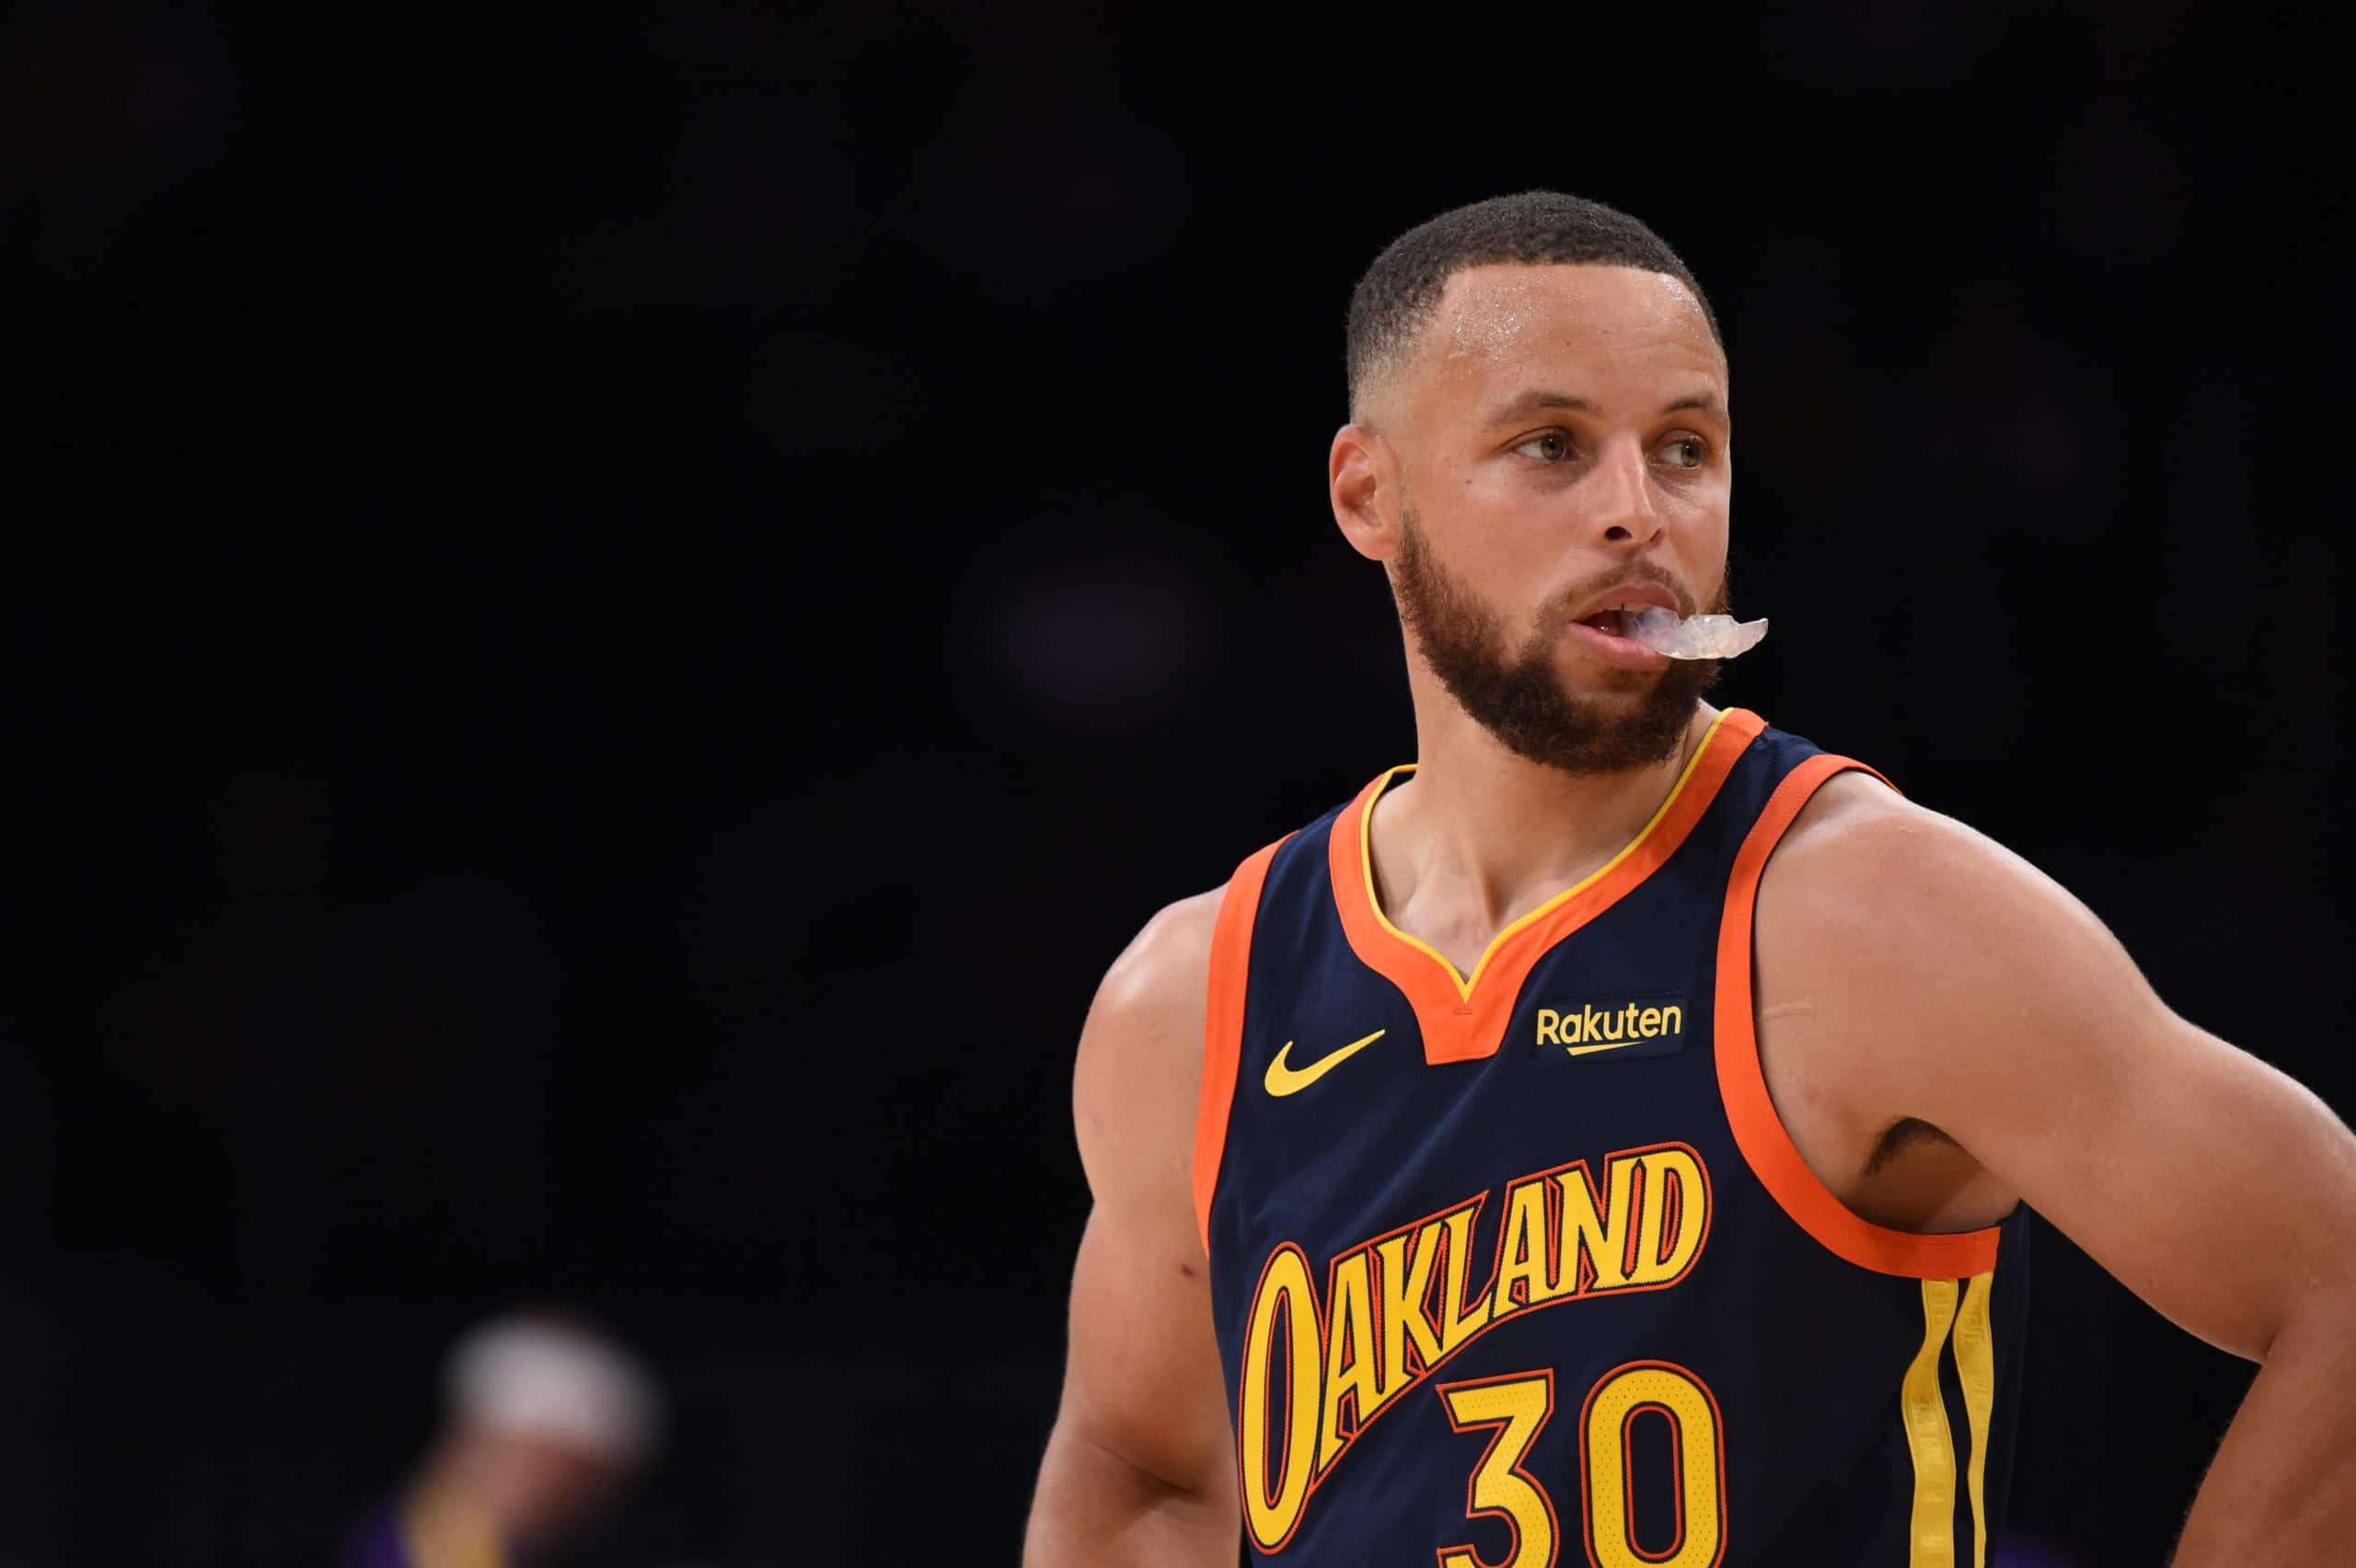 steph-curry-says-warriors-will-near-out-swinging-vs-grizzlies-after-loss-to-lakers.jpg